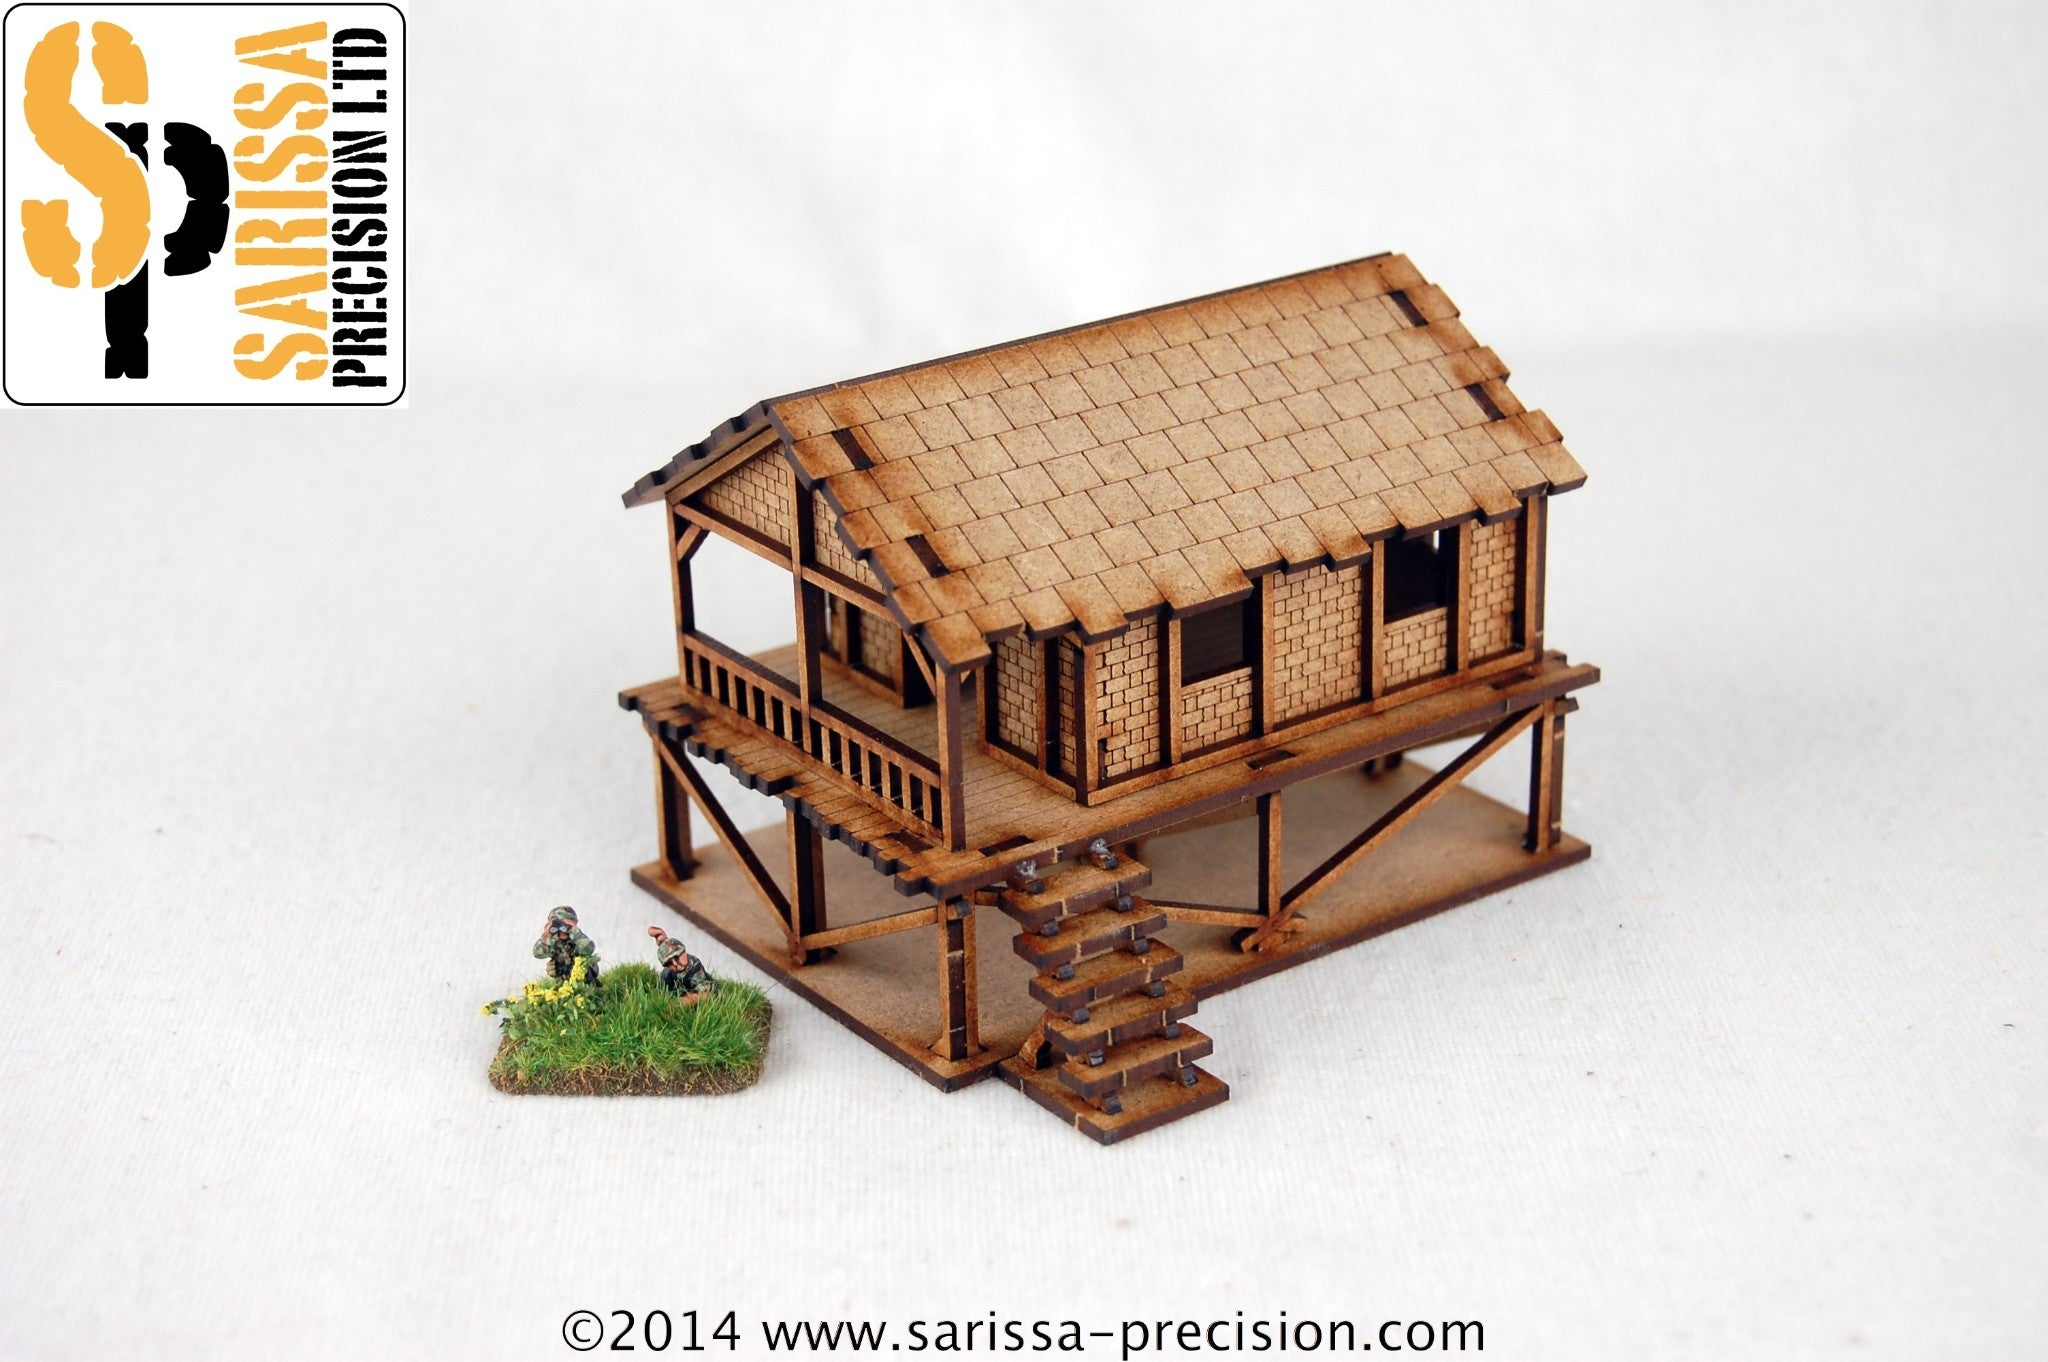 Woven Palm-Style Village House - 15mm